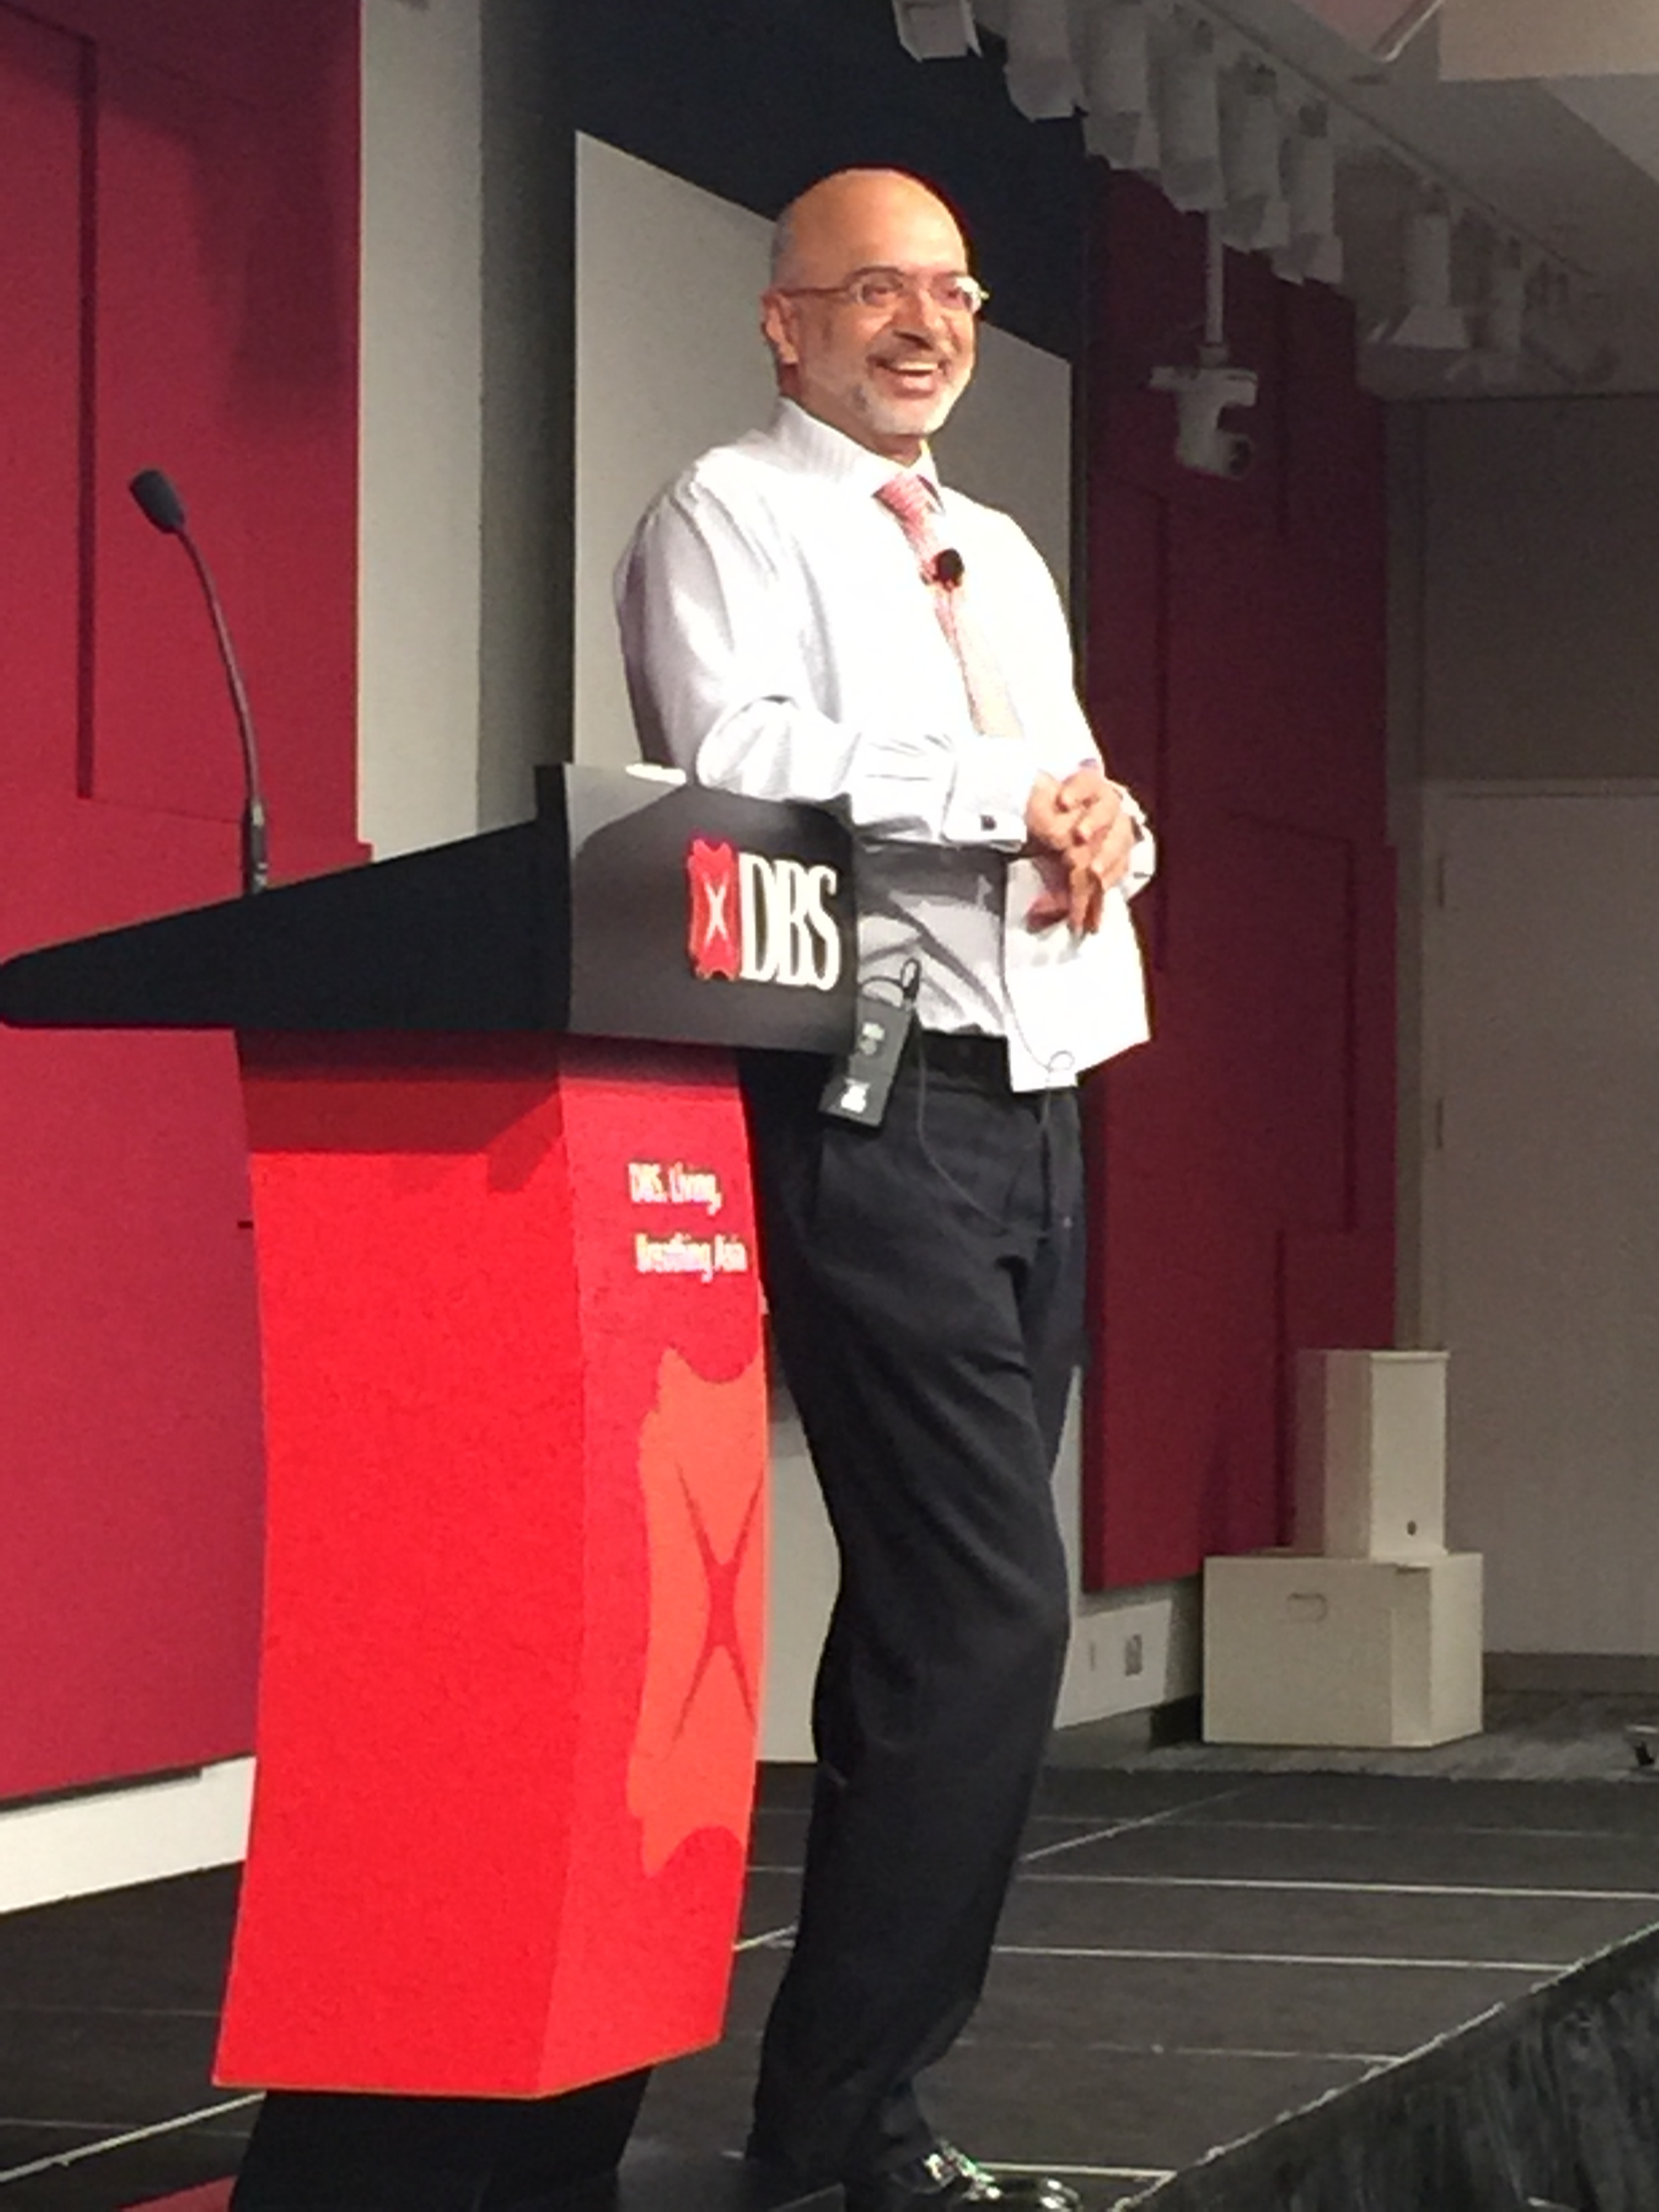 DBS Bank CEO Piyush Gupta